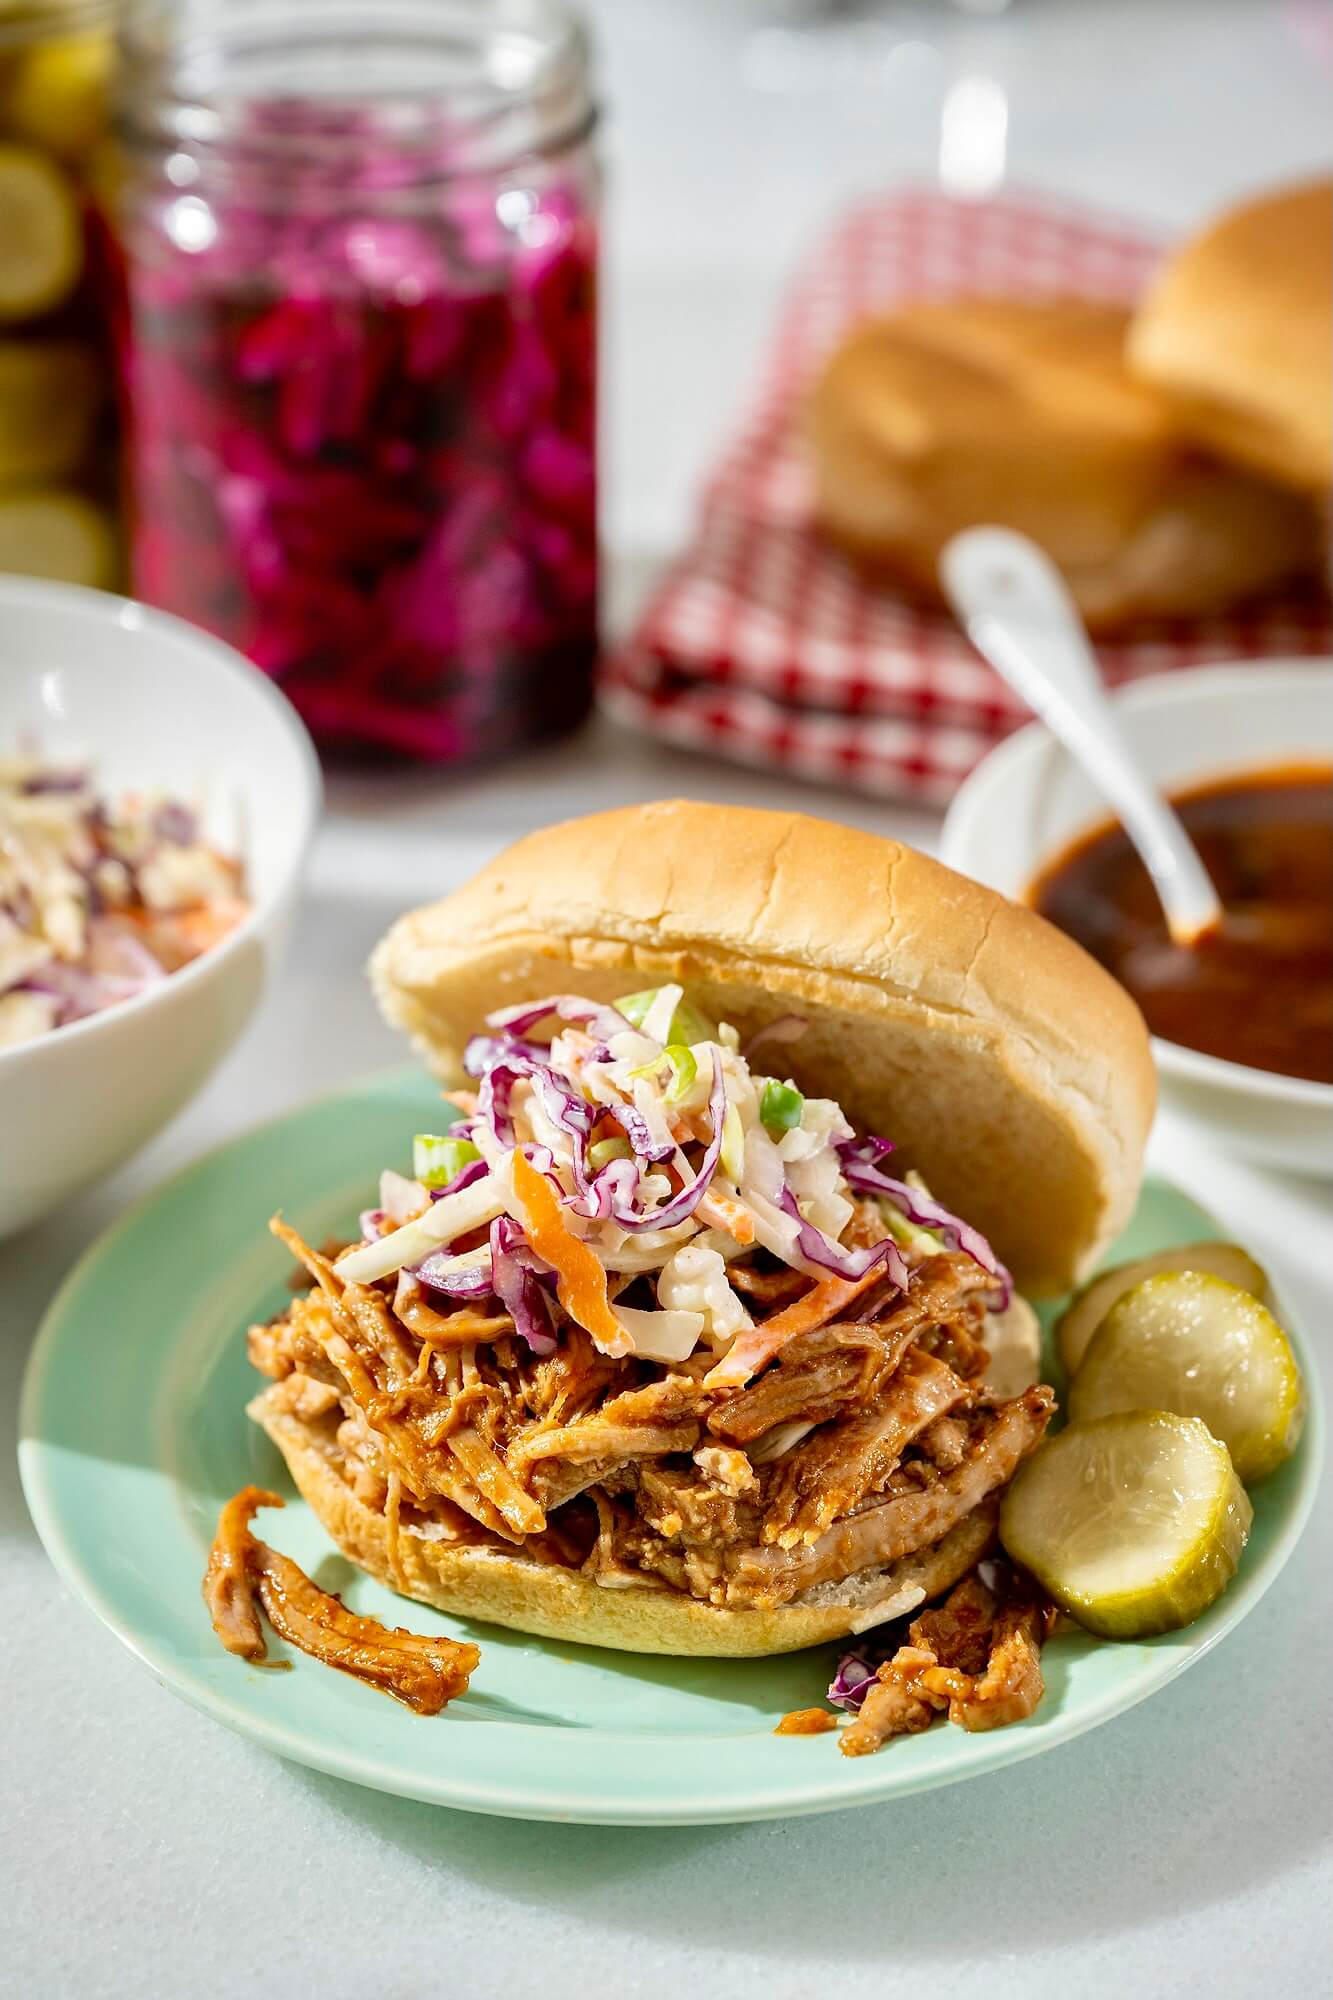 This easy-to-make recipe can be adjusted to any number of diners and offers a leaner spin on what has long been a crowd favorite. With options for homemade or store-bought BBQ sauce!